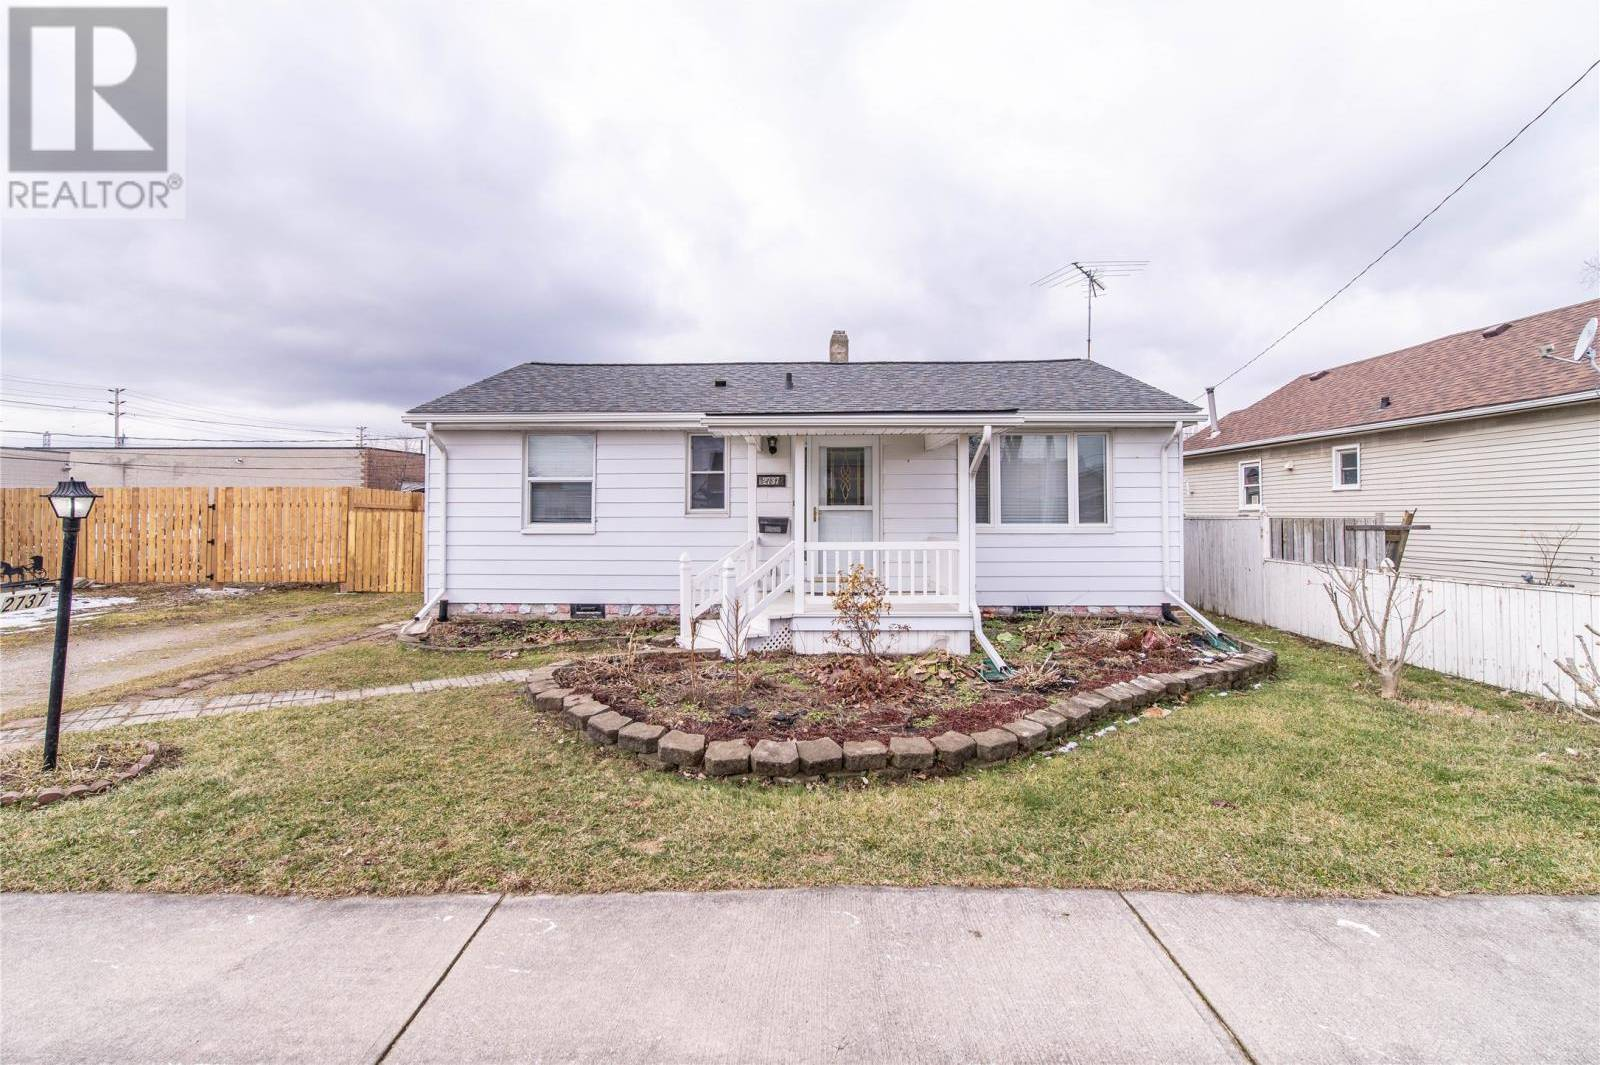 House for sale at 2737 Chandler Rd Windsor Ontario - MLS: 20002247